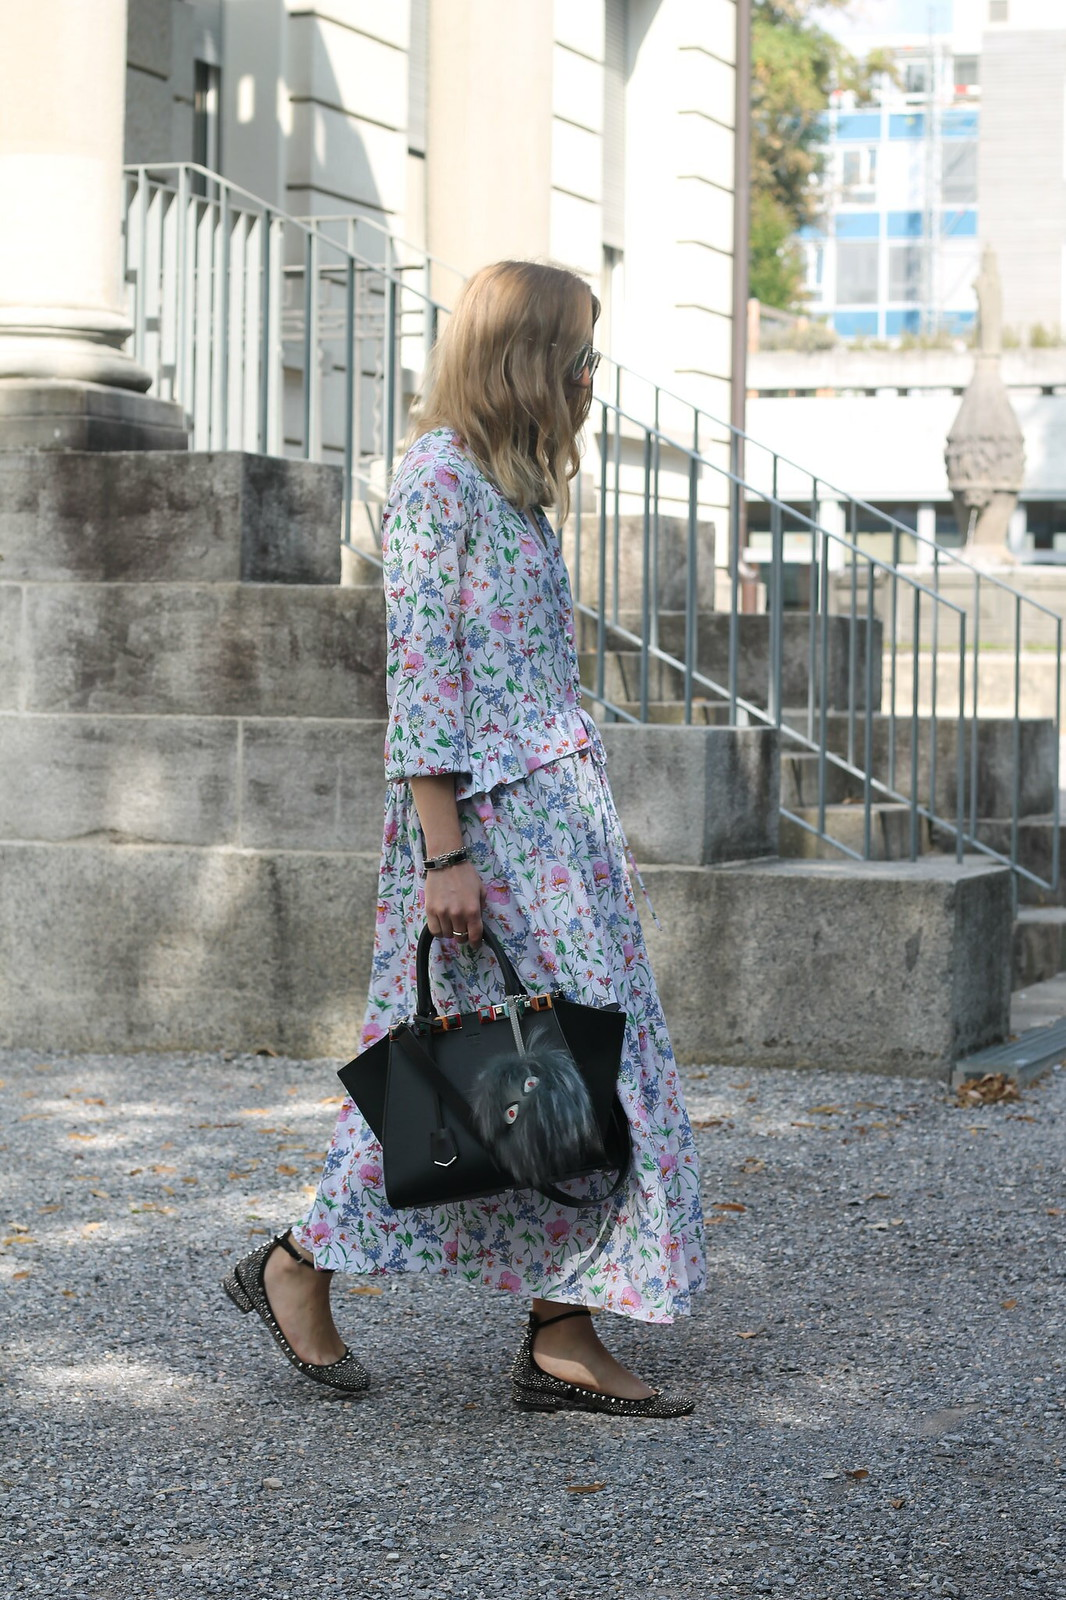 floral-maxidress-whole-outfit-side-wiebkembg